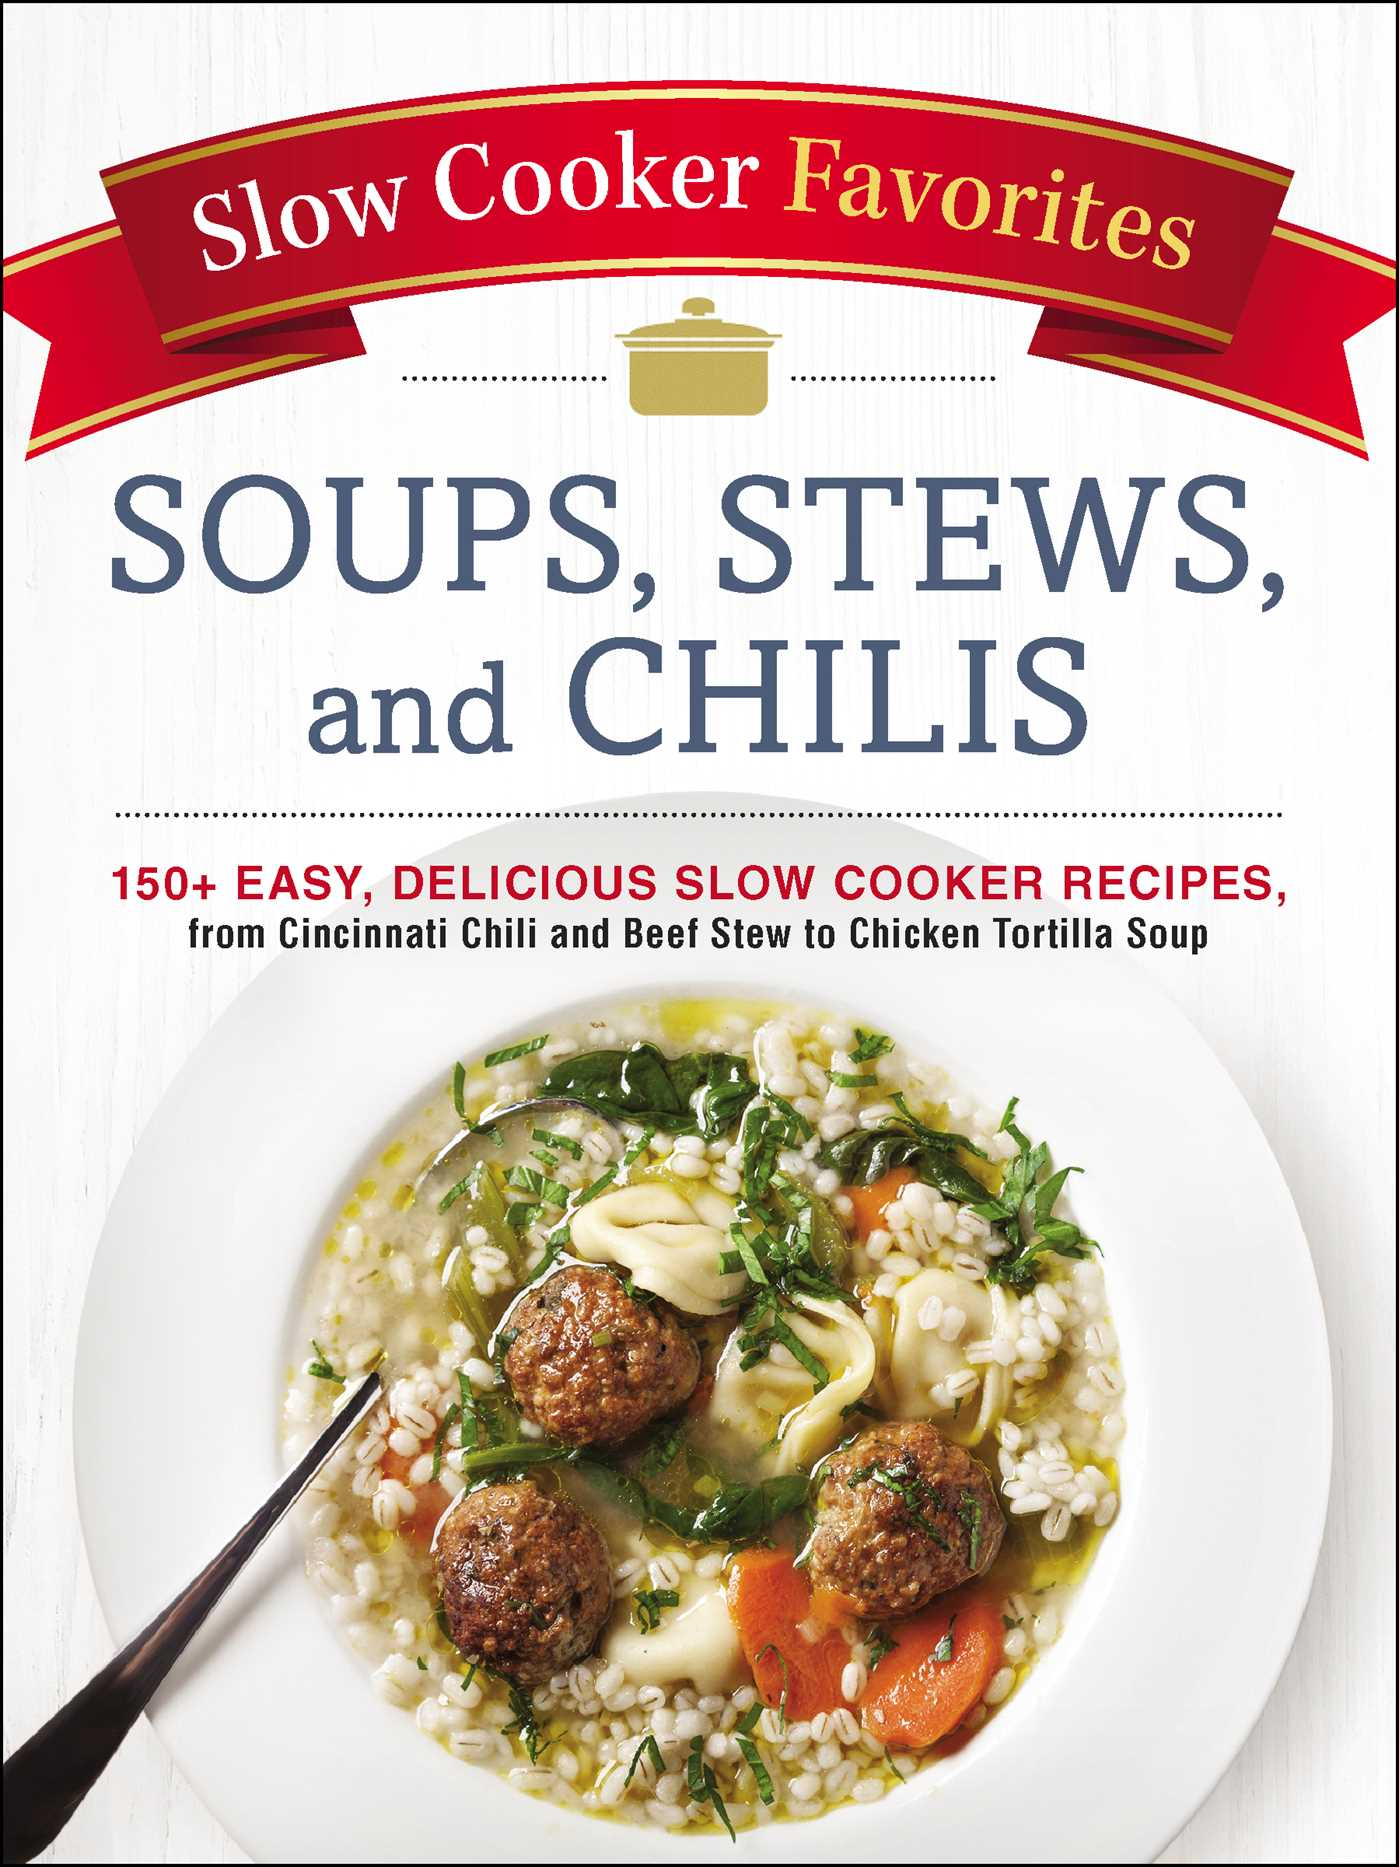 Slow cooker favorites soups stews and chilis 9781507205037 hr